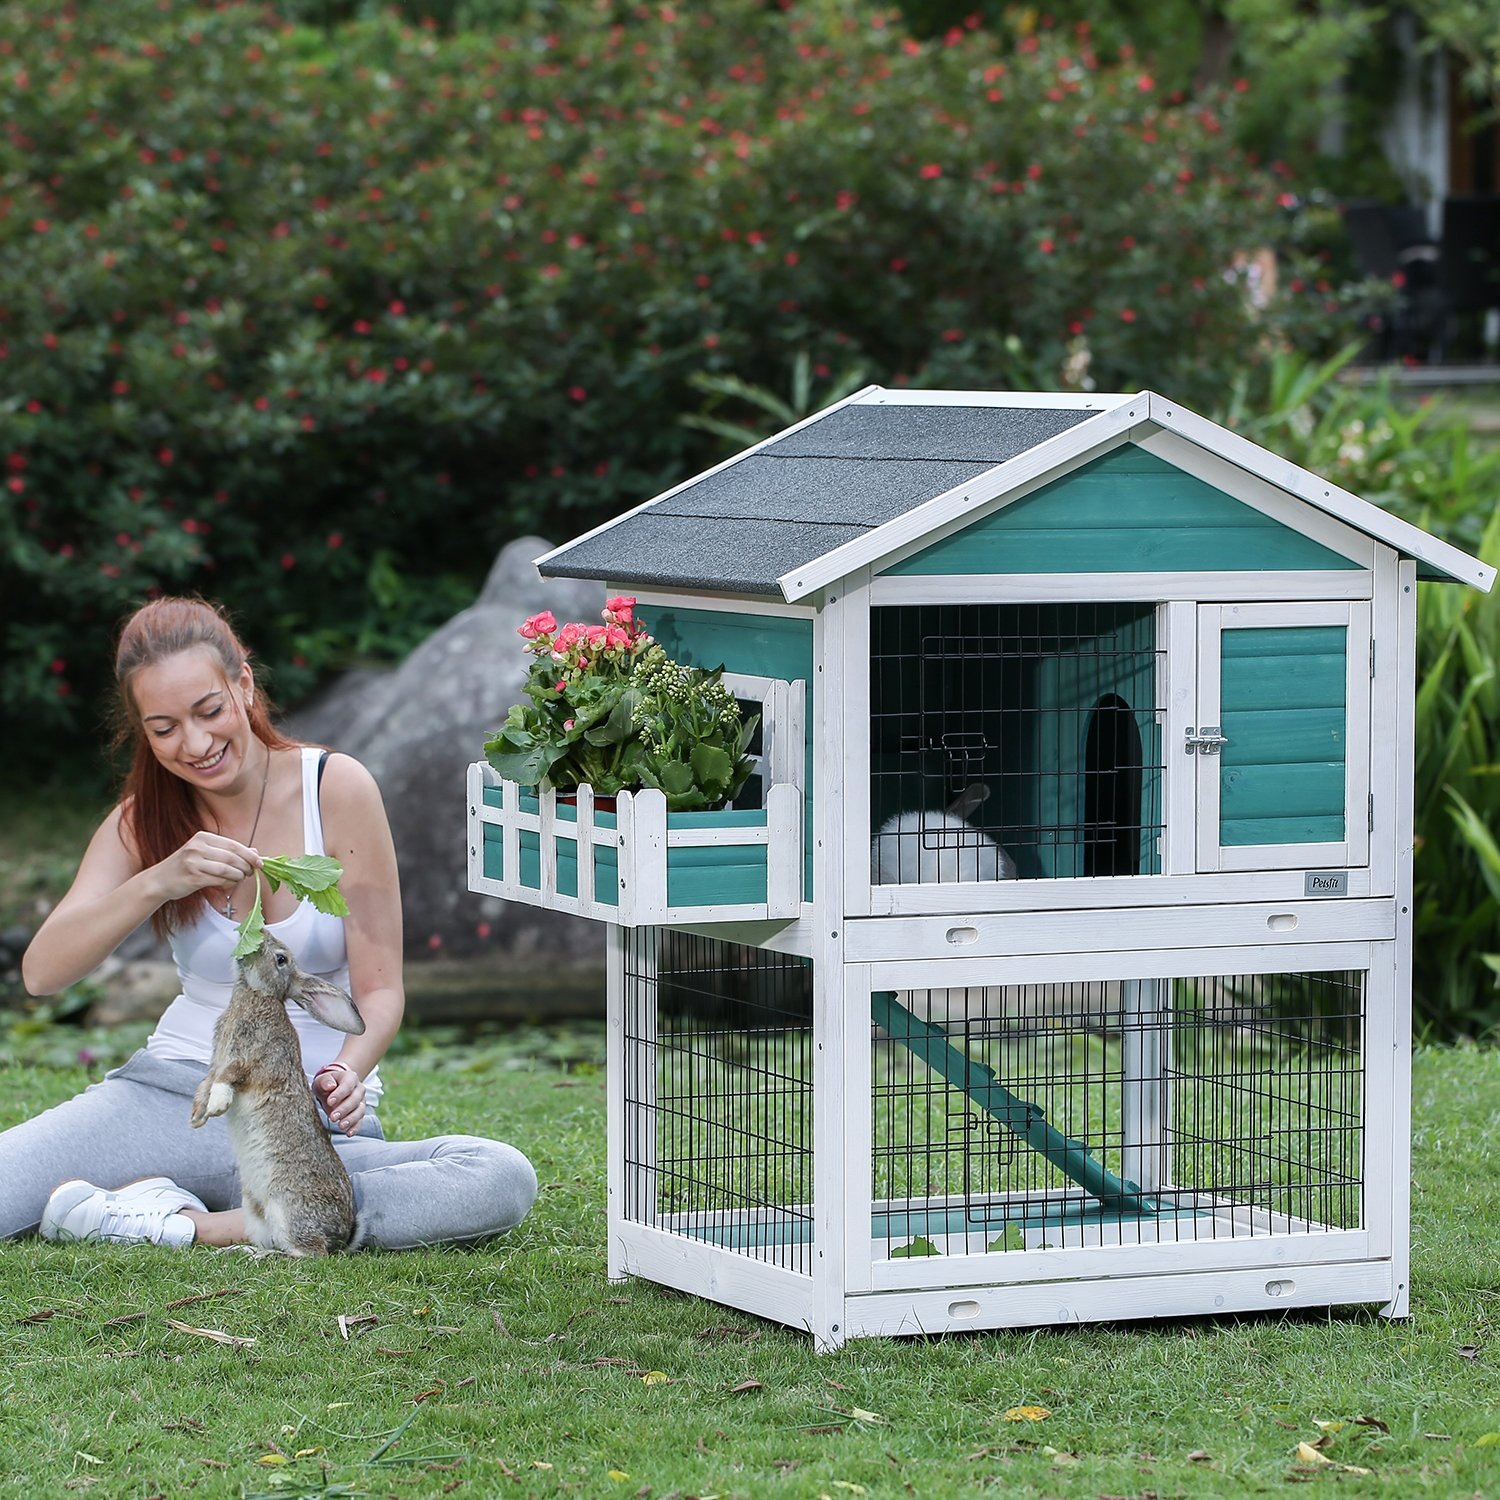 Petsfit 42.5 x 30 x 46 inches Bunny Cages,Outdoor Rabbit Hutch by Petsfit